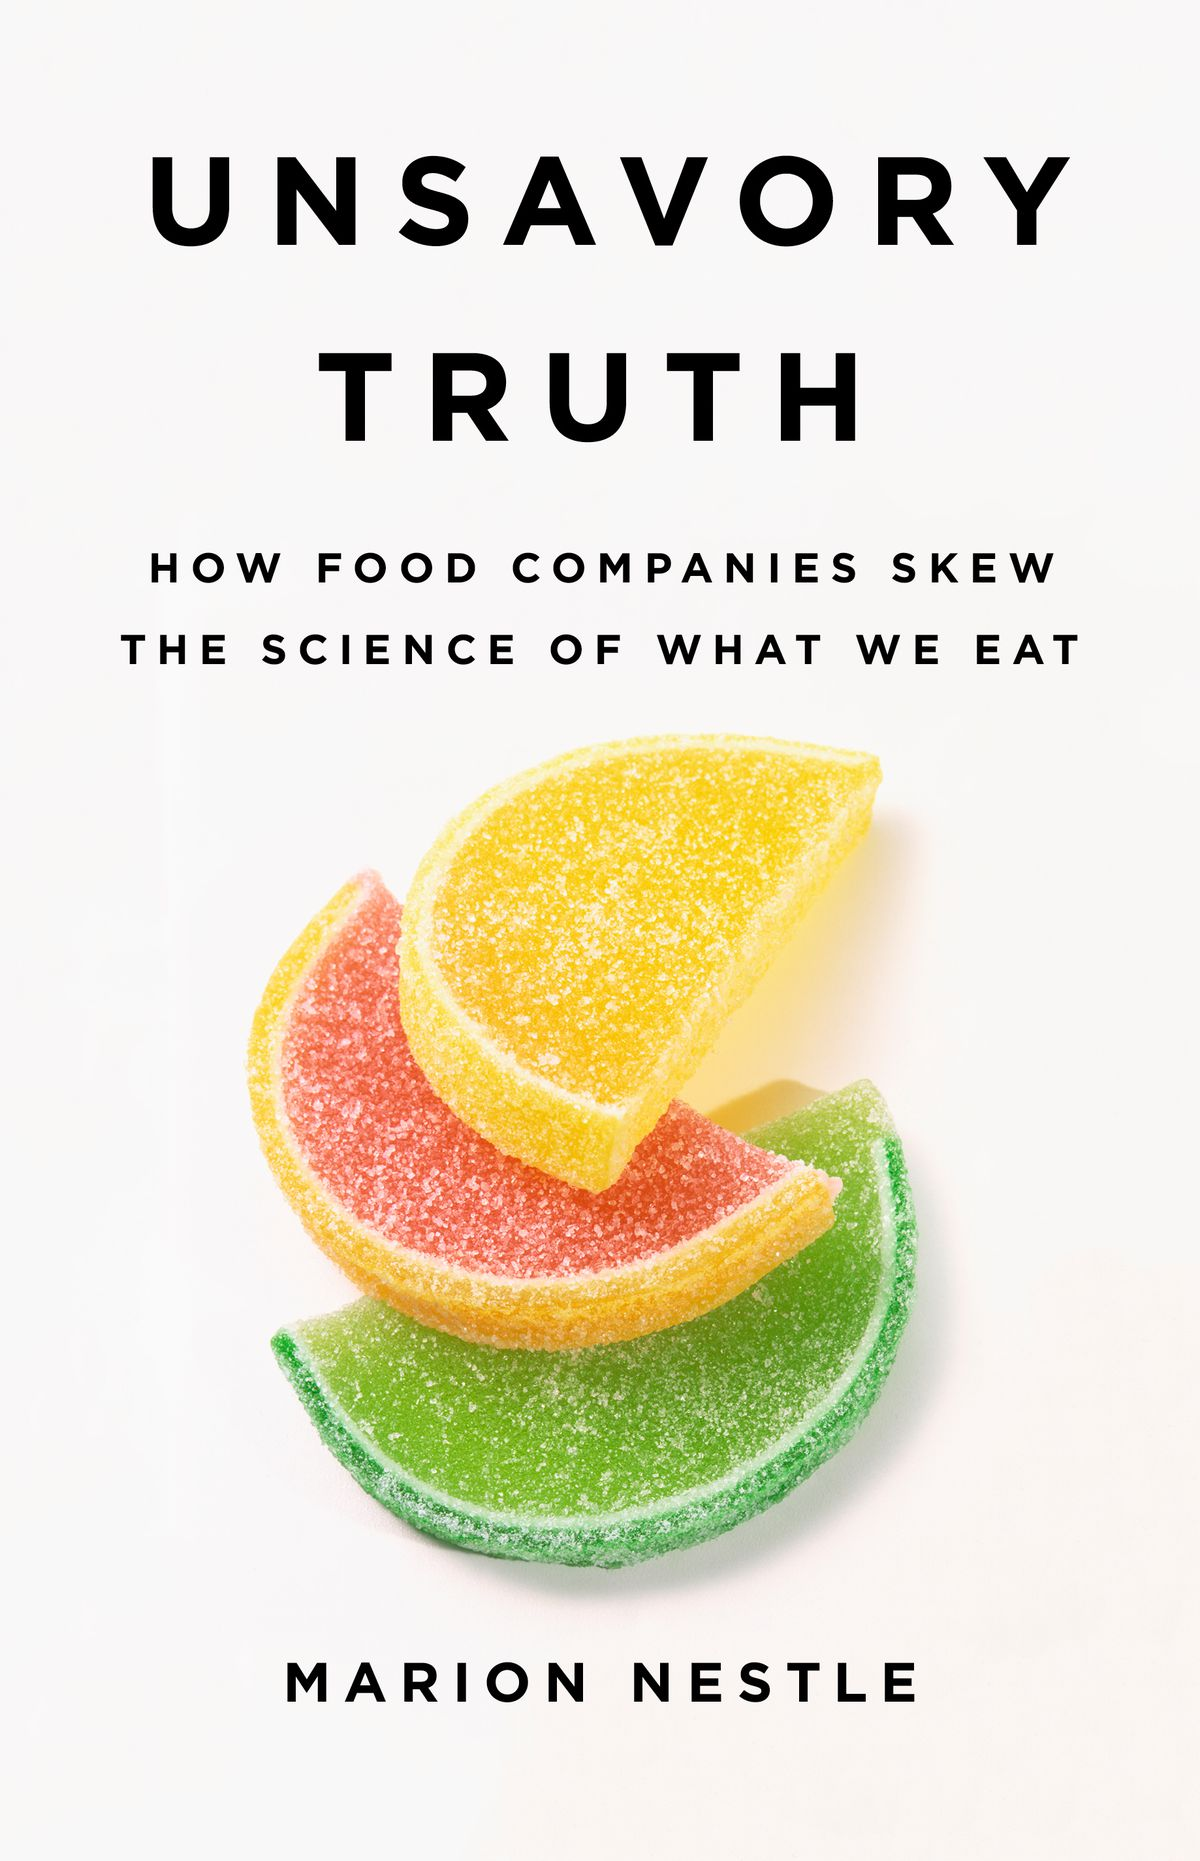 Nutrition research is deeply biased by food companies  A new